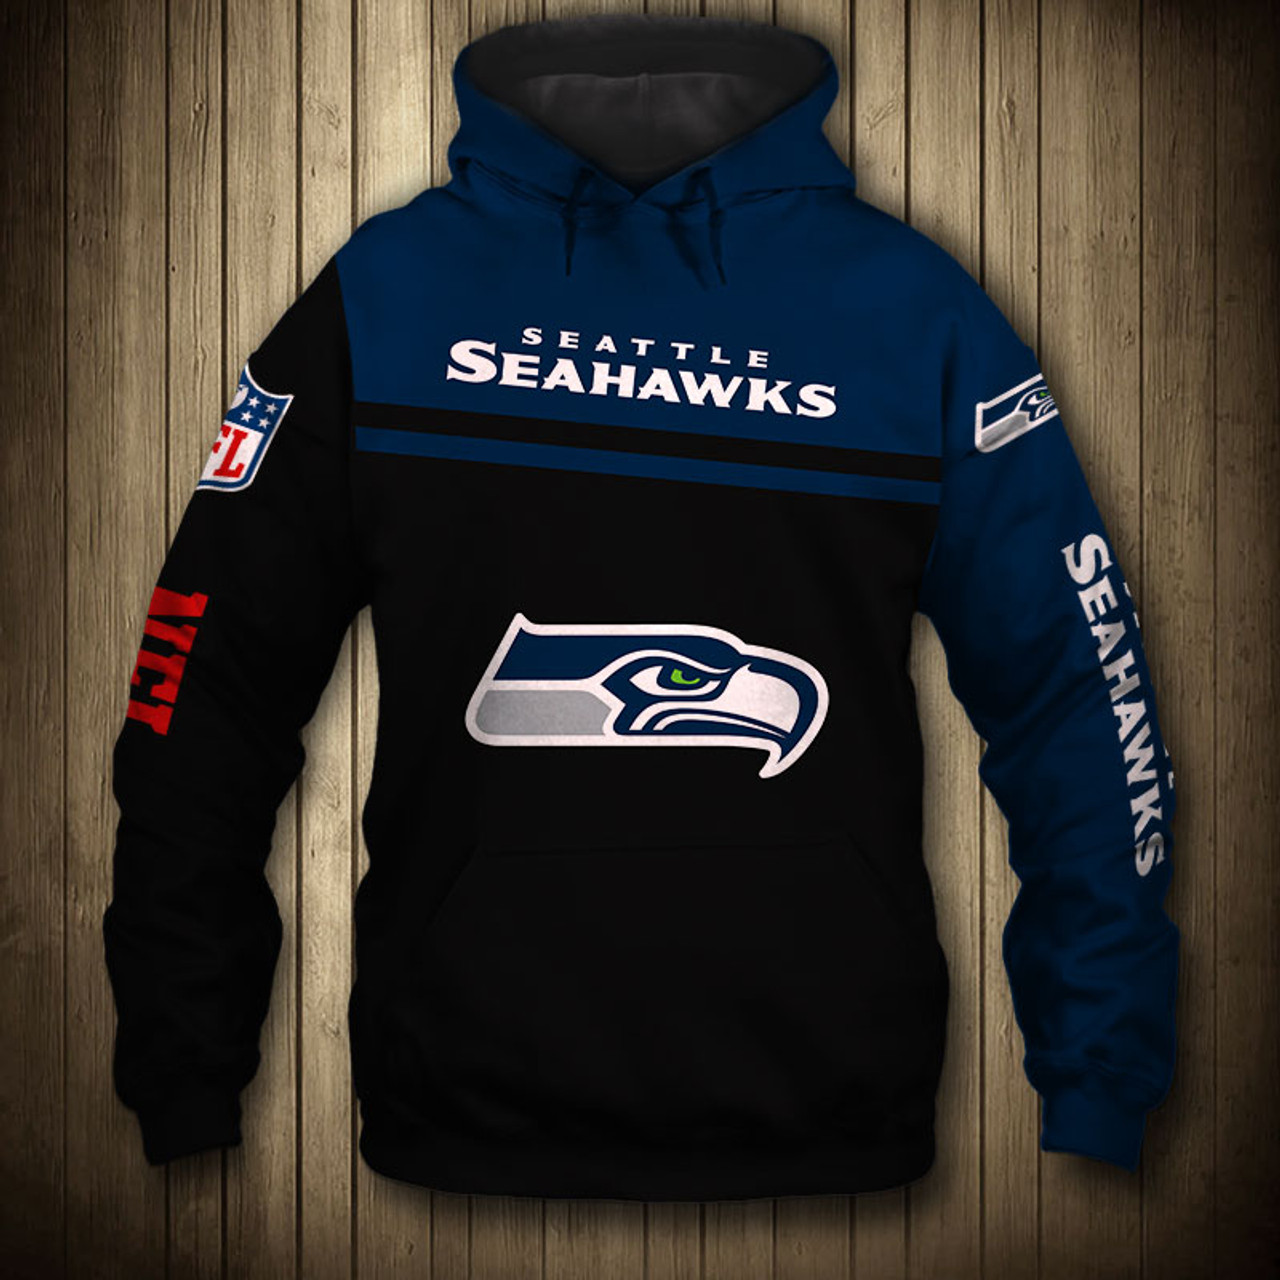 fad3c1a7 **(OFFICIAL-NEW-N.F.L.SEATTLE-SEAHAWKS-TEAM-PULLOVER-HOODIES/NICE-CUSTOM-3D-GRAPHIC-PRINTED-DOUBLE-SIDED-ALL-OVER-GRAPHIC-SEAHAWKS-LOGOS  & ...